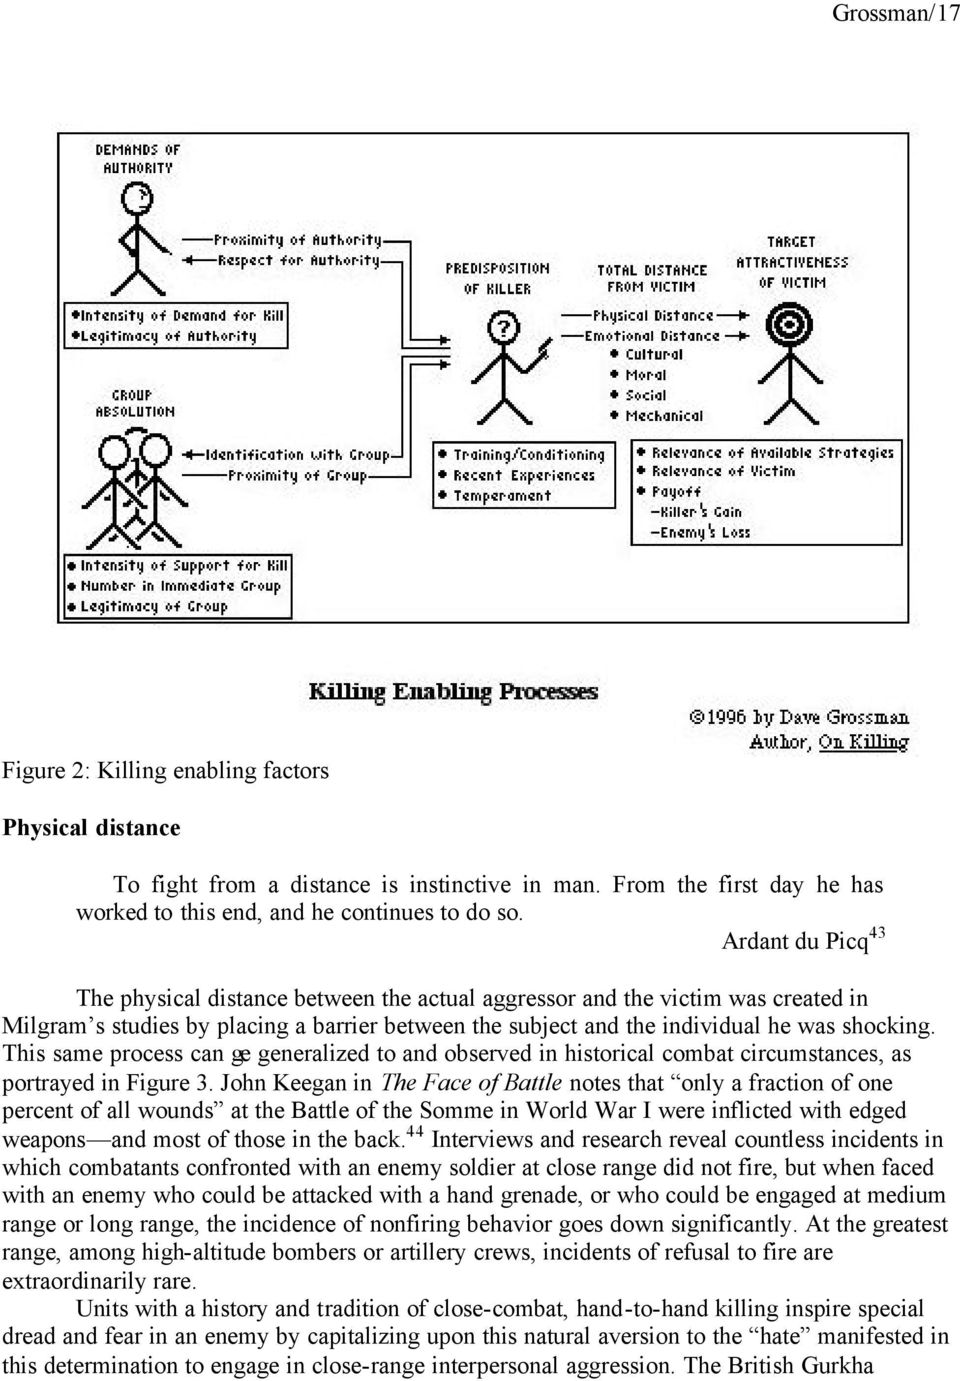 This same process can ge generalized to and observed in historical combat circumstances, as portrayed in Figure 3.